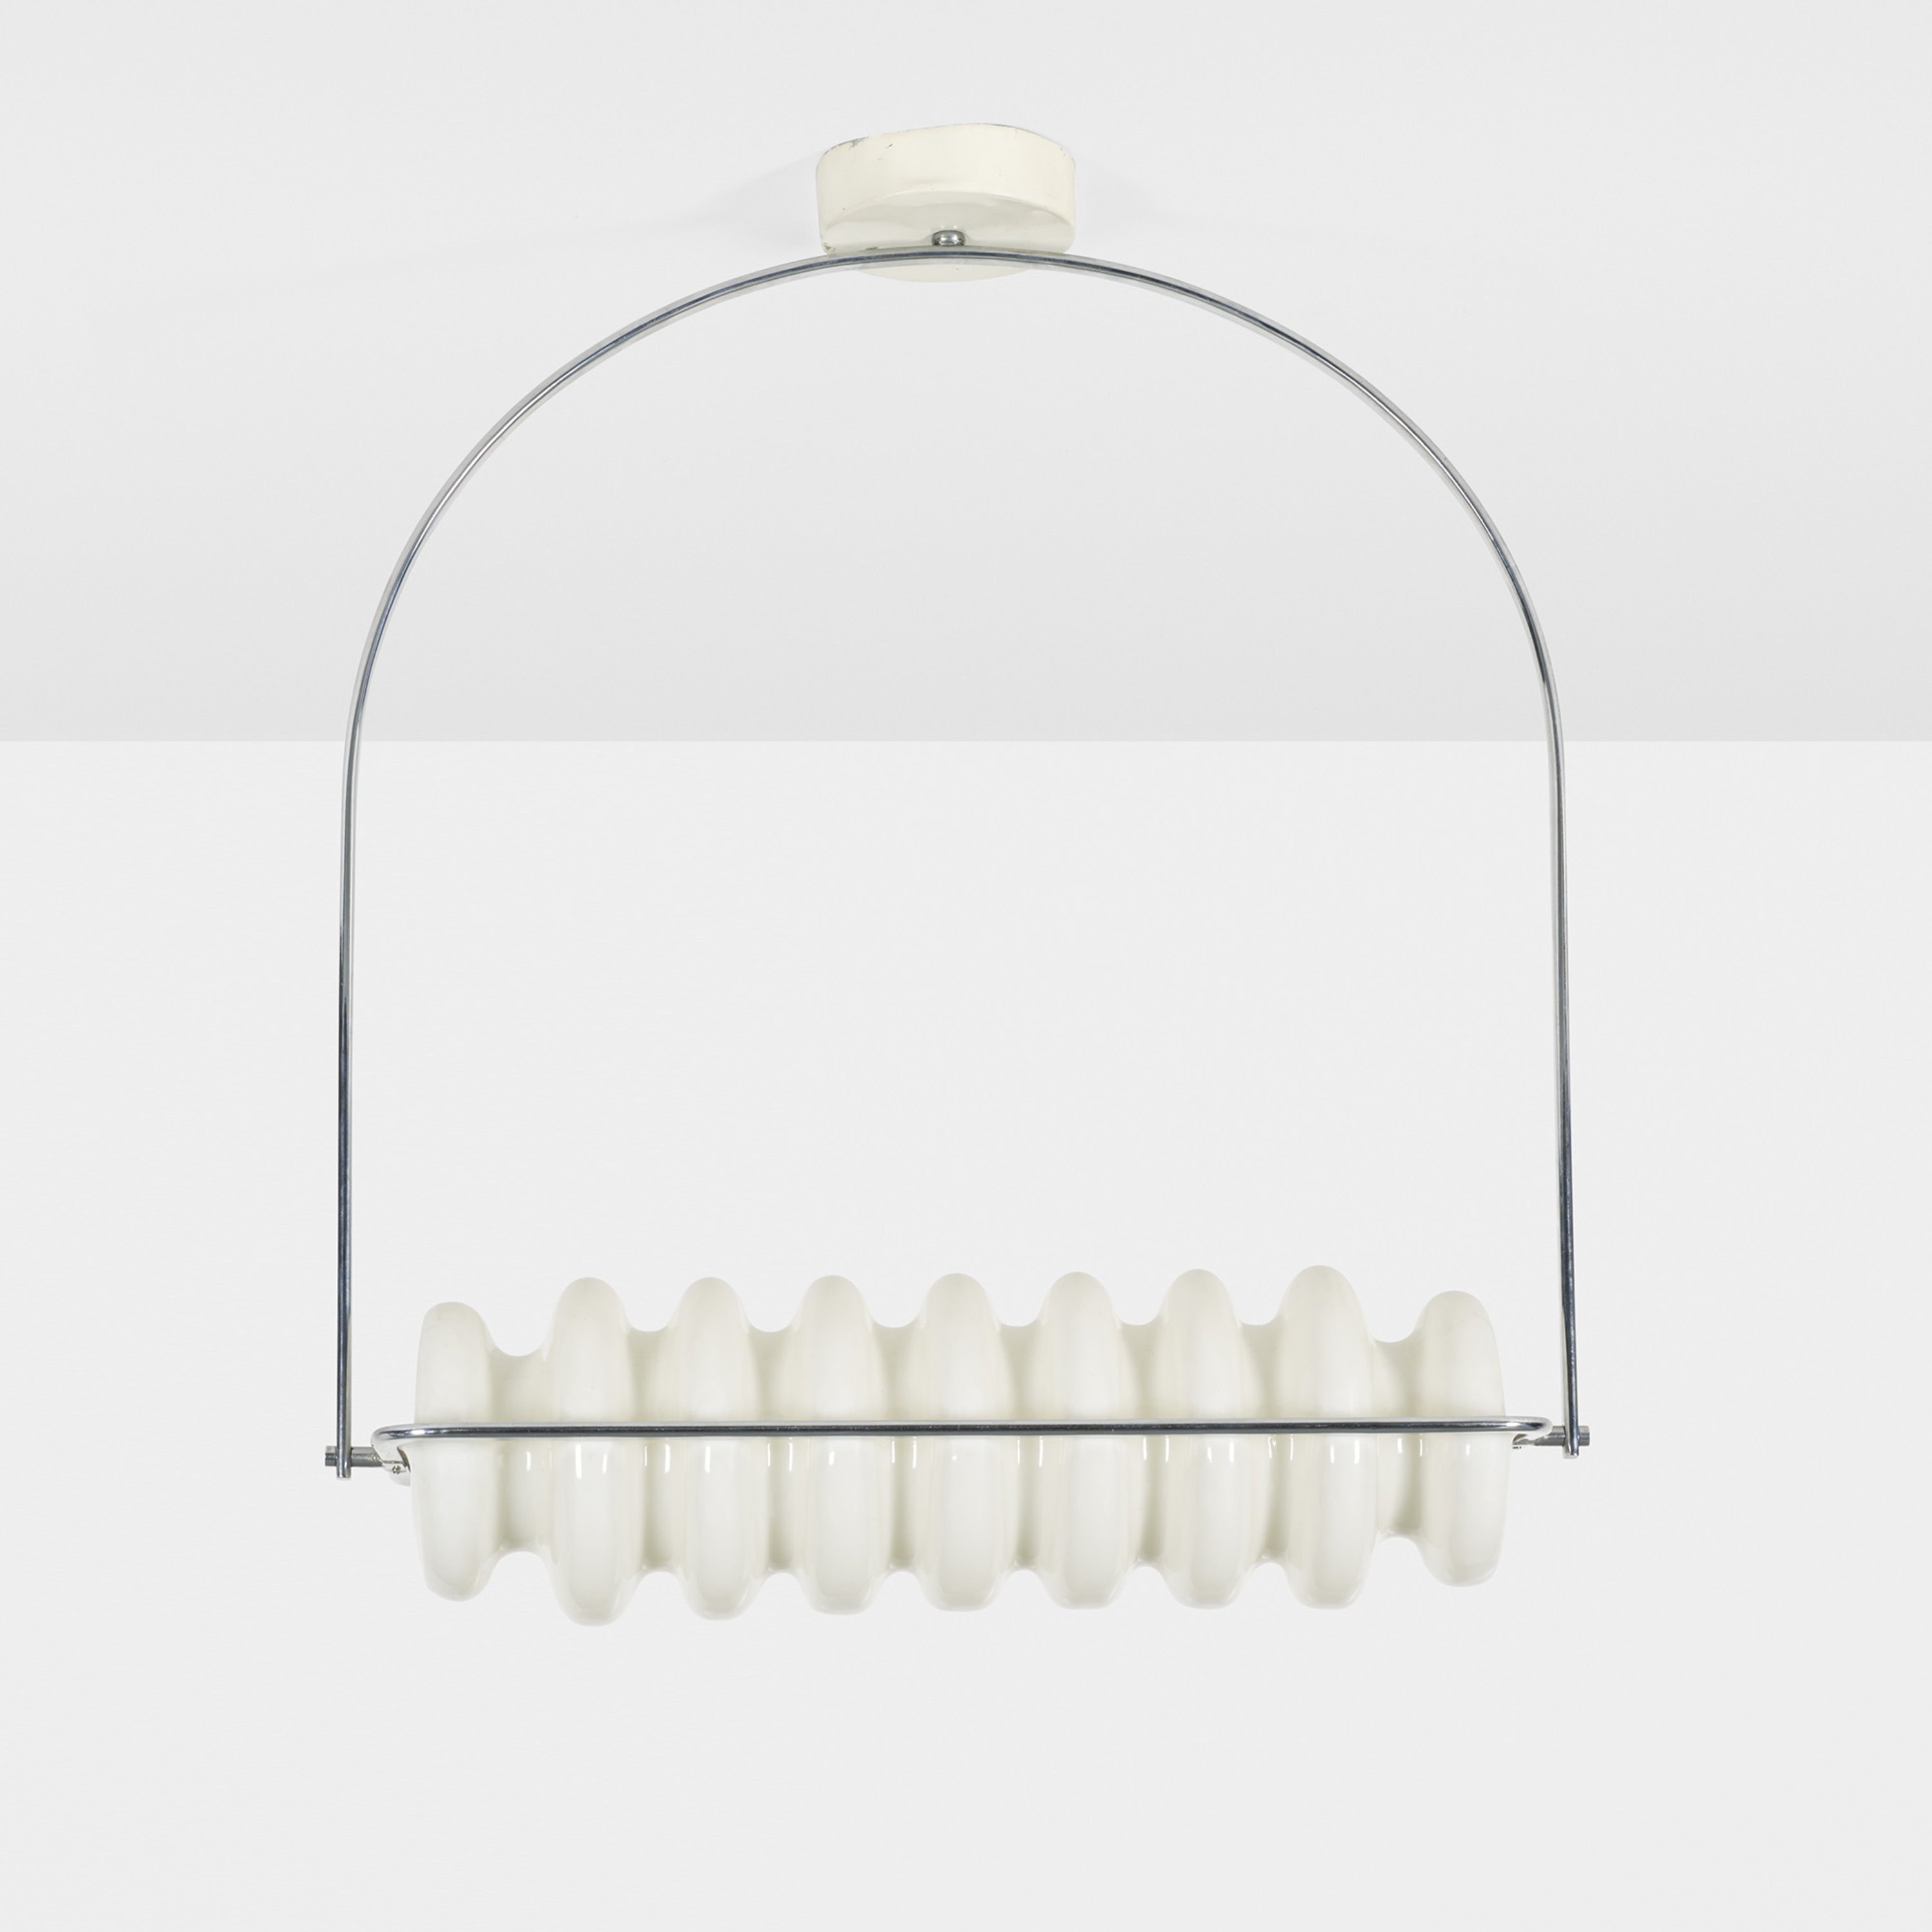 Poltronova Bruco ceiling lamp by Ettore Sottsass